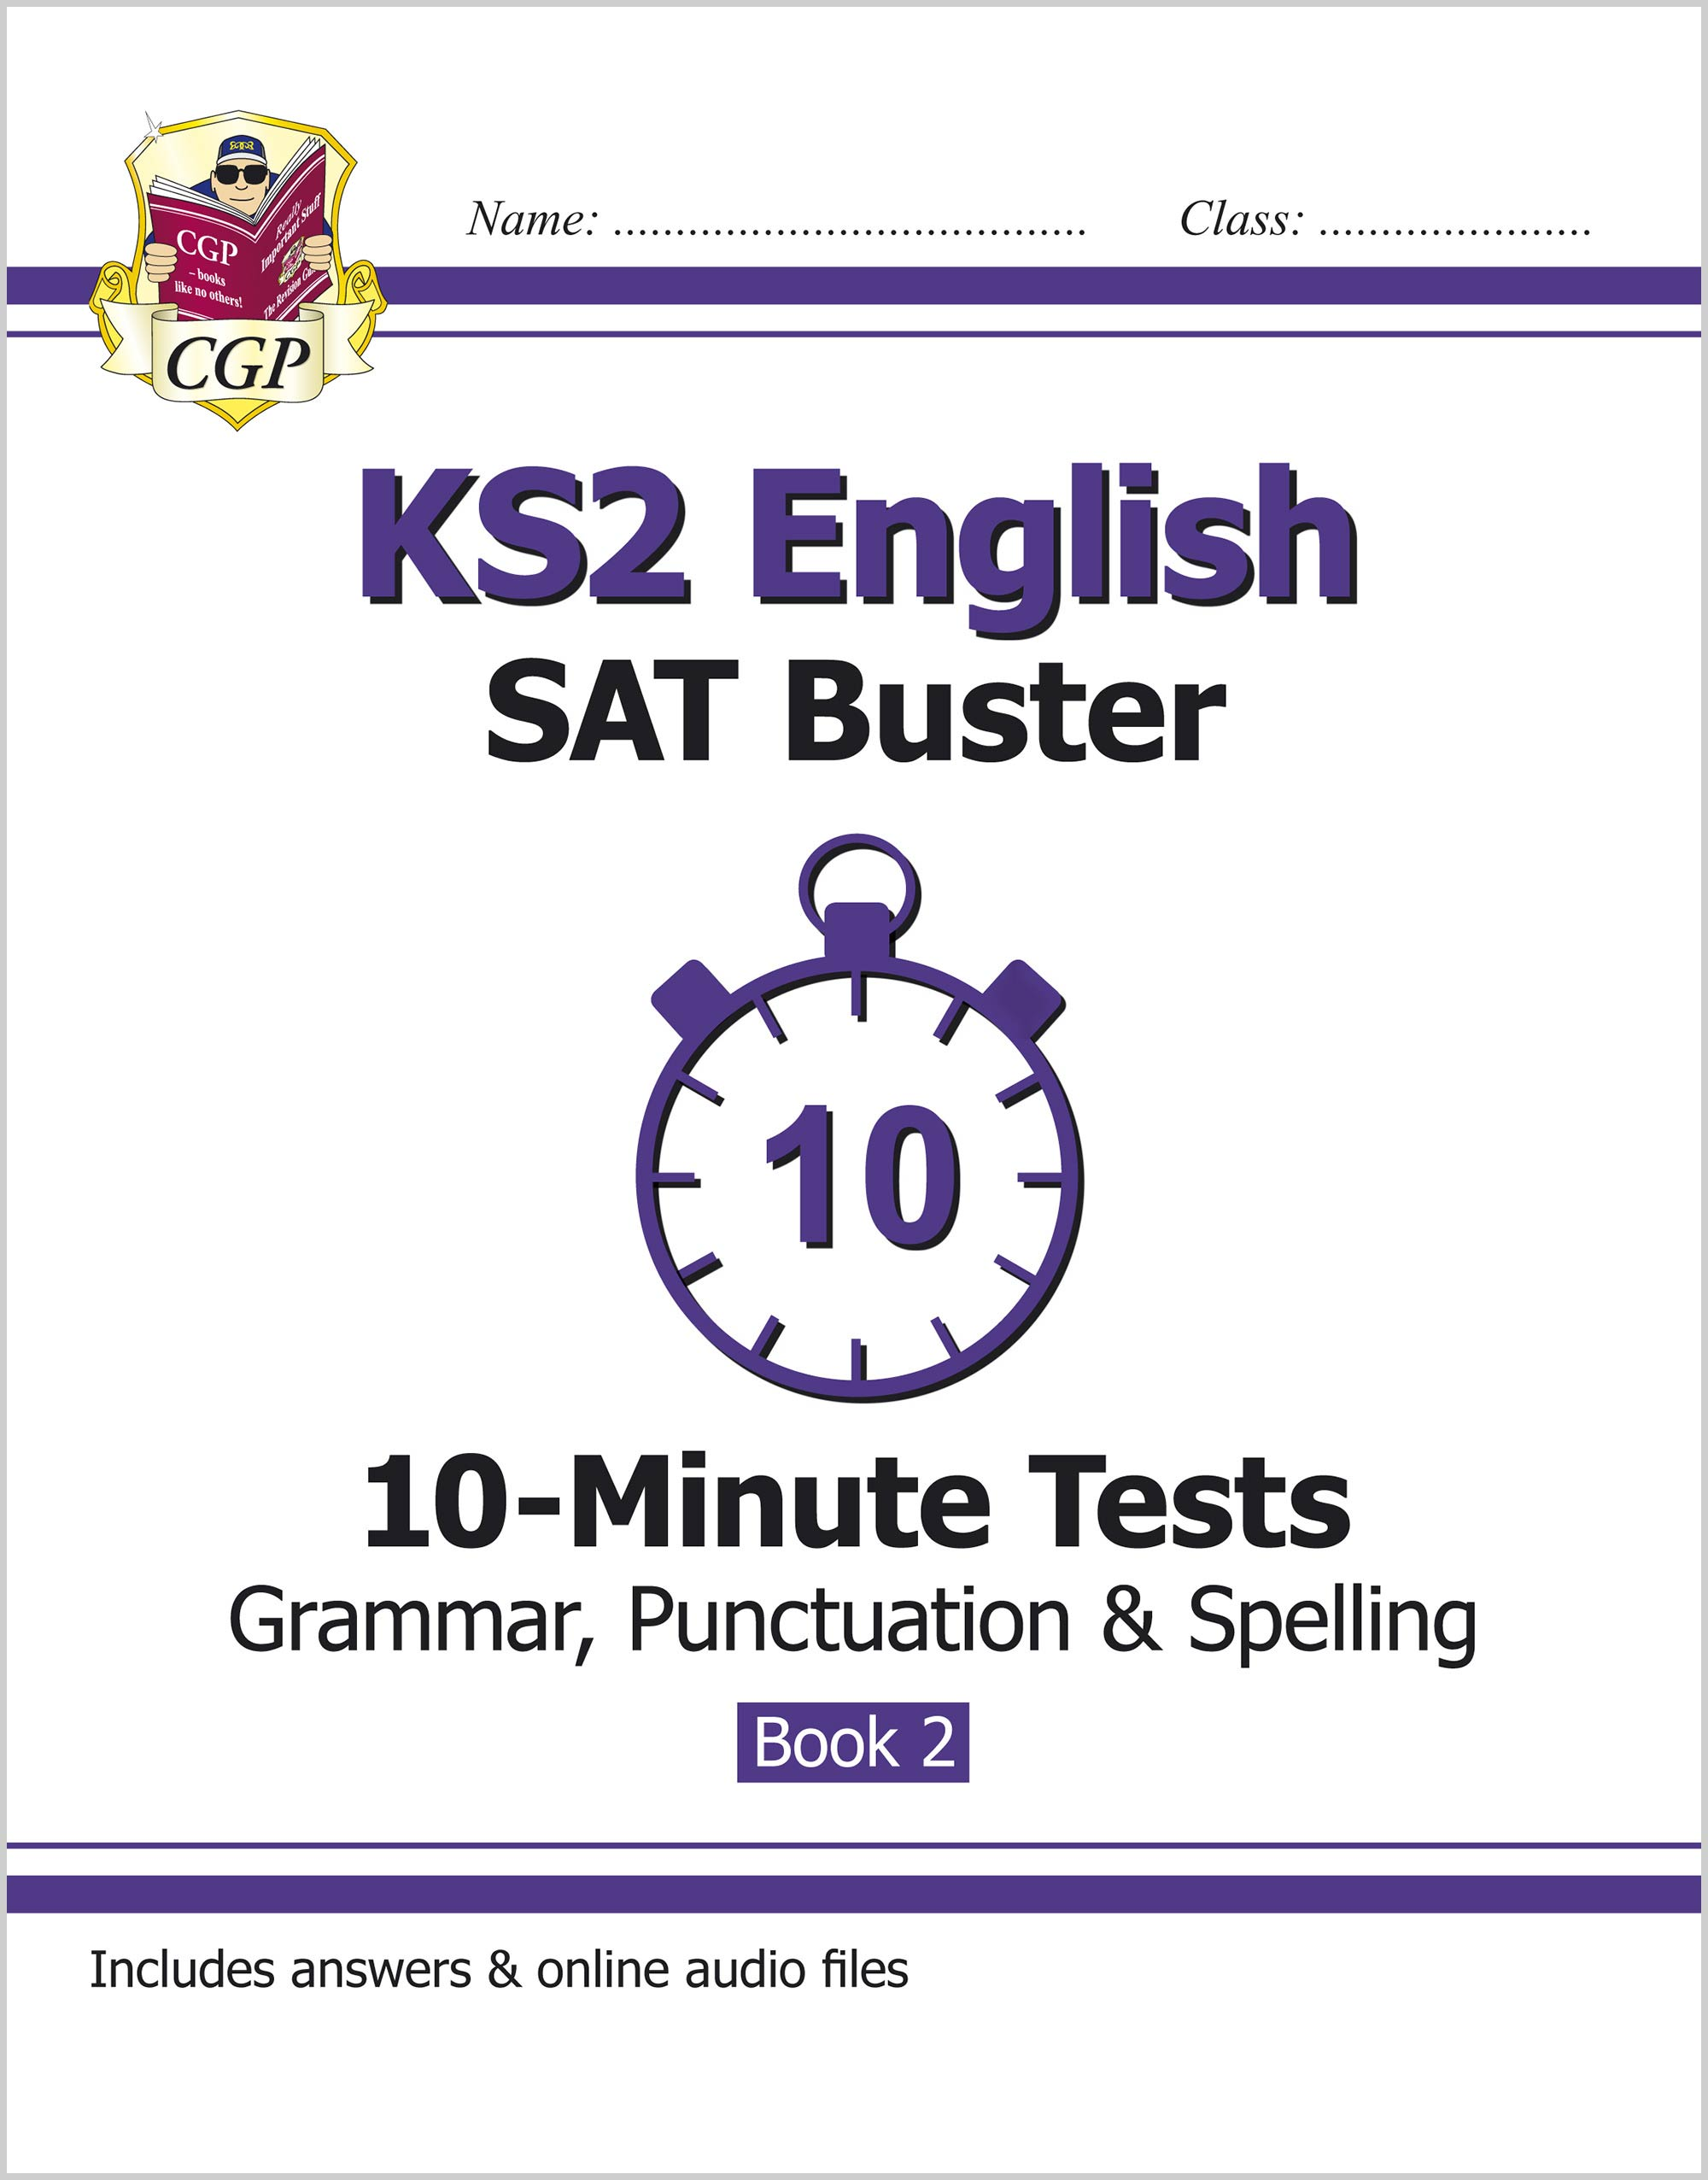 EXPG221 - KS2 English SAT Buster 10-Minute Tests: Grammar, Punctuation & Spelling Book 2 (for the 20